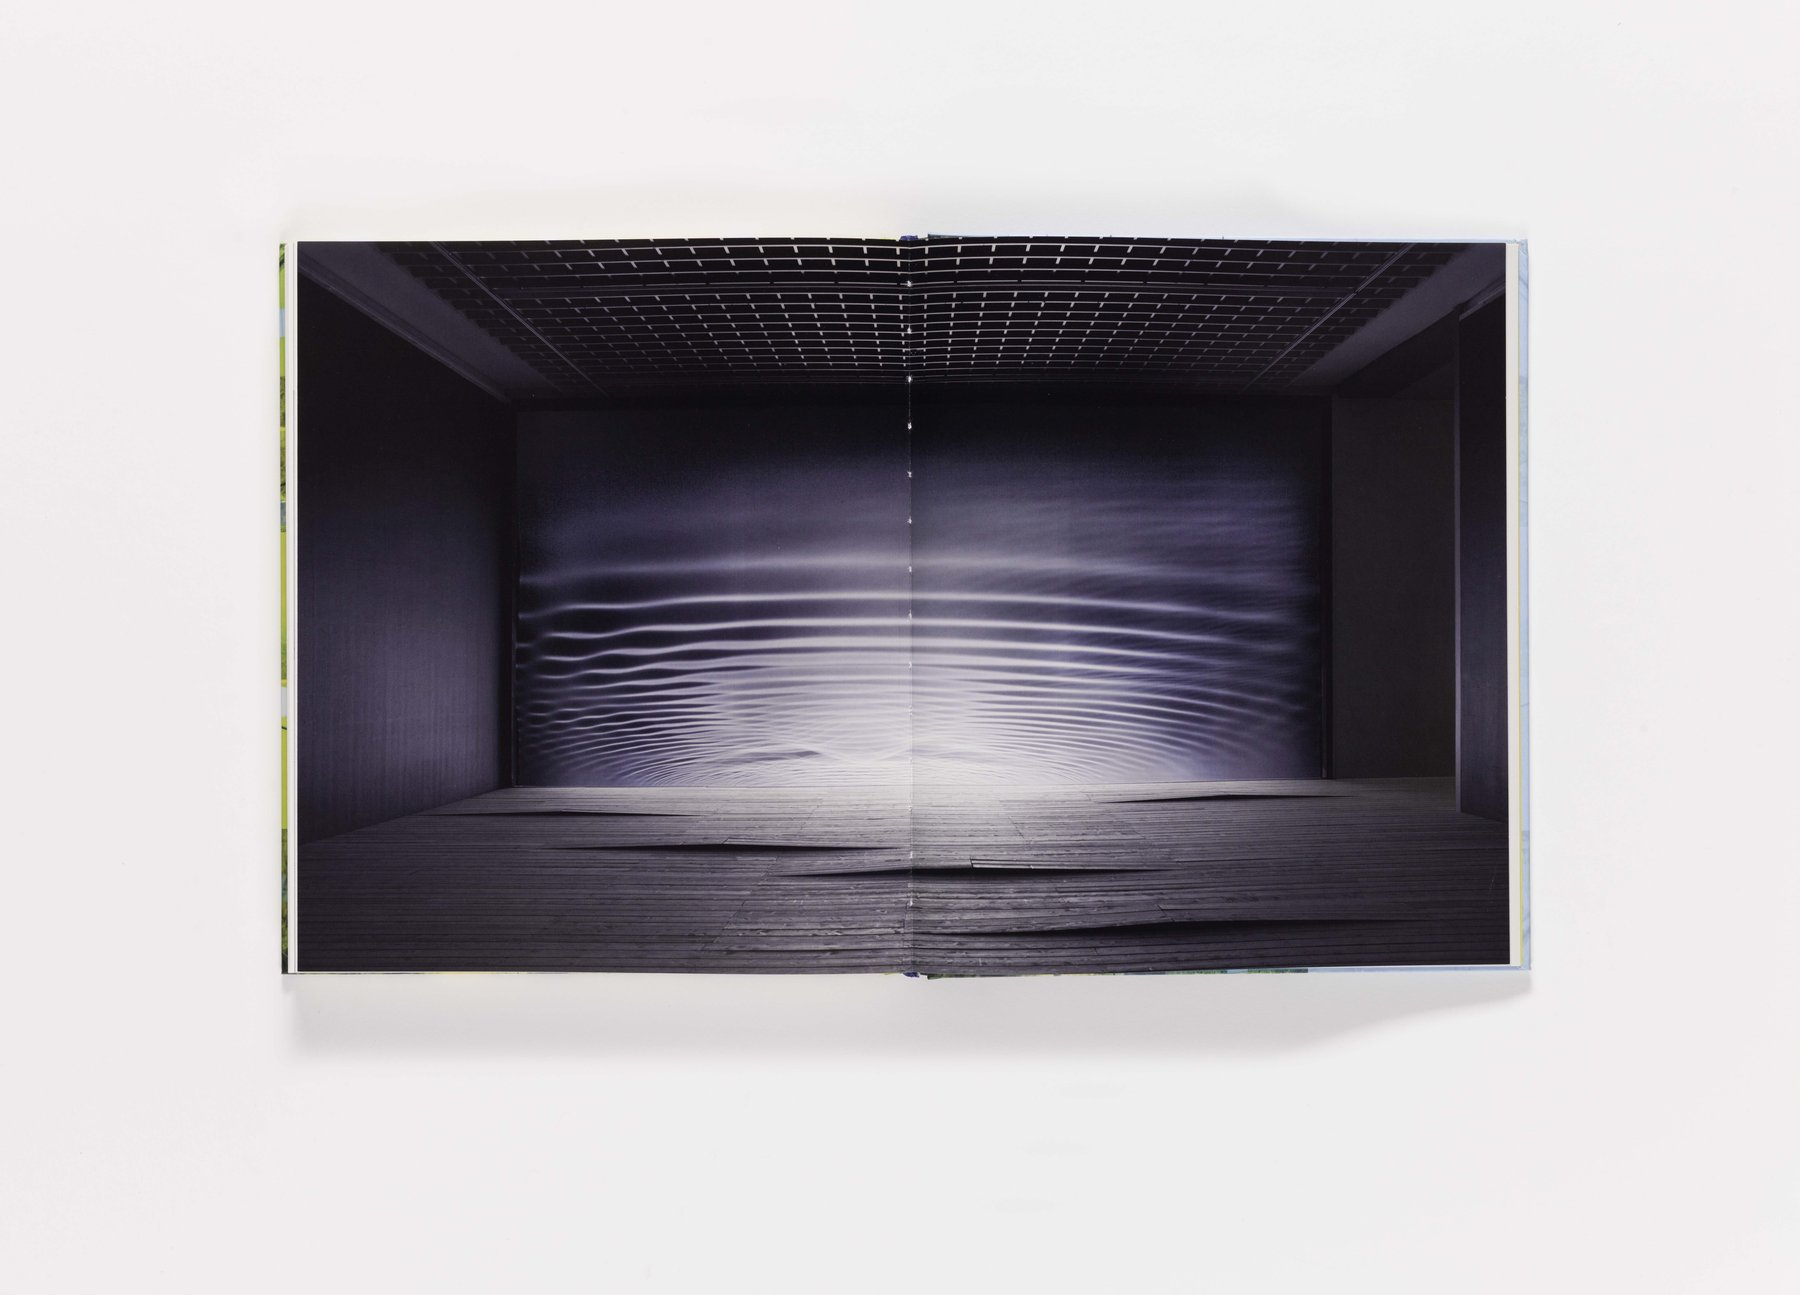 Take Your Time: Olafur Eliasson publication plate 233